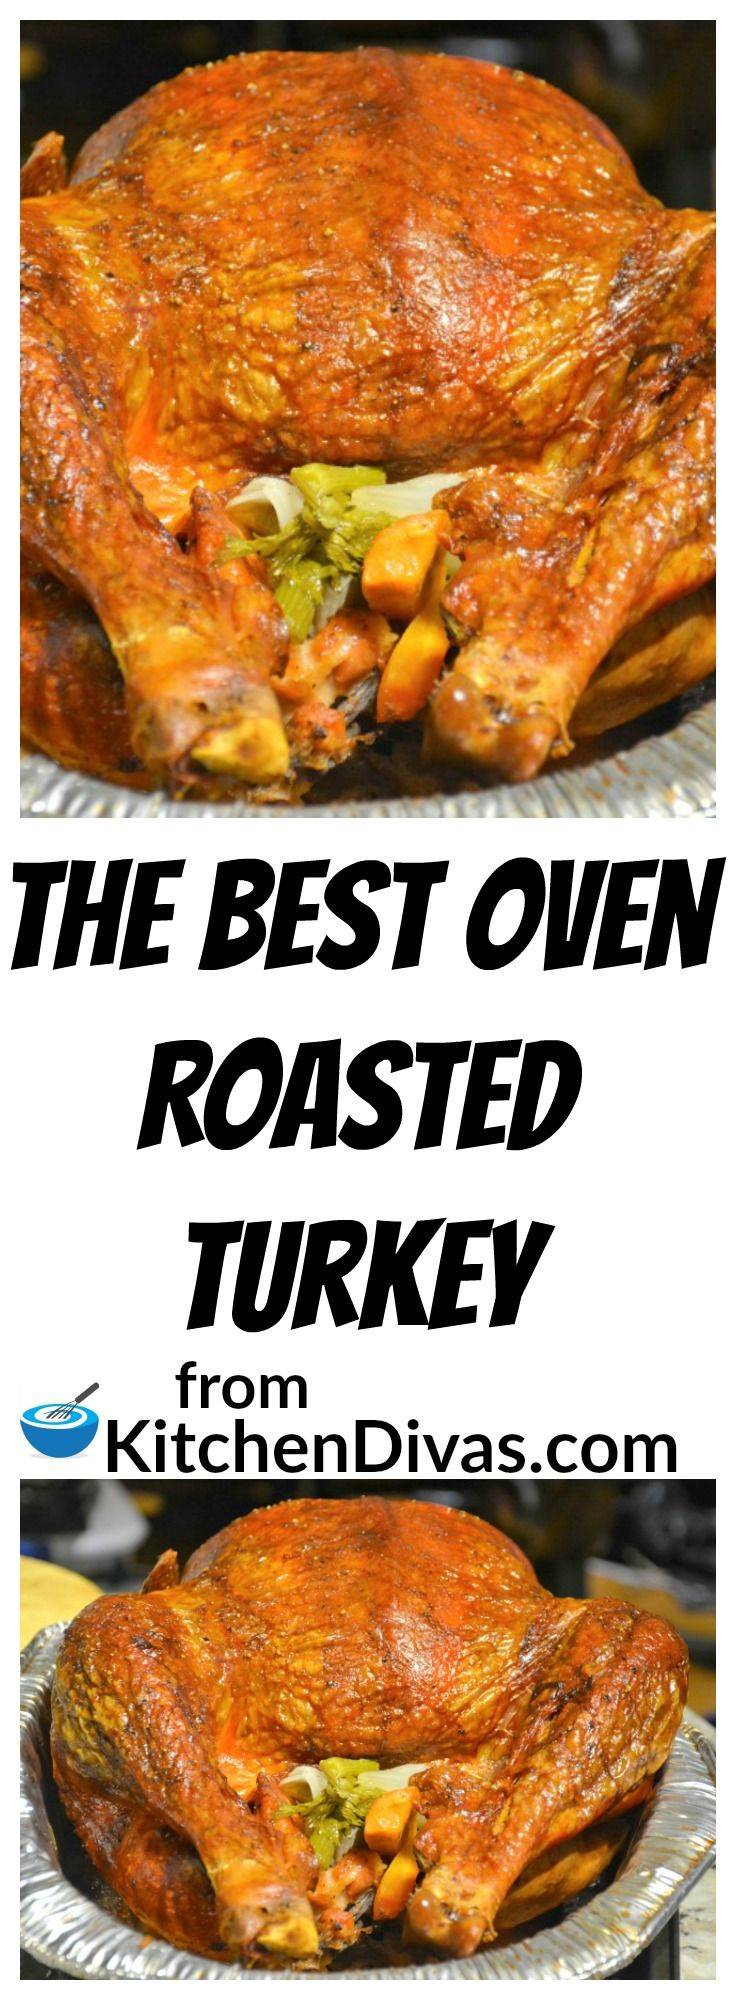 We love making turkey!  I think it is my favorite meal of all time!  The turkey, the stuffing, the potatoes, the crispy turkey skin, the gravy!  I love it all.  This turkey recipe is easy and a a definite keeper!